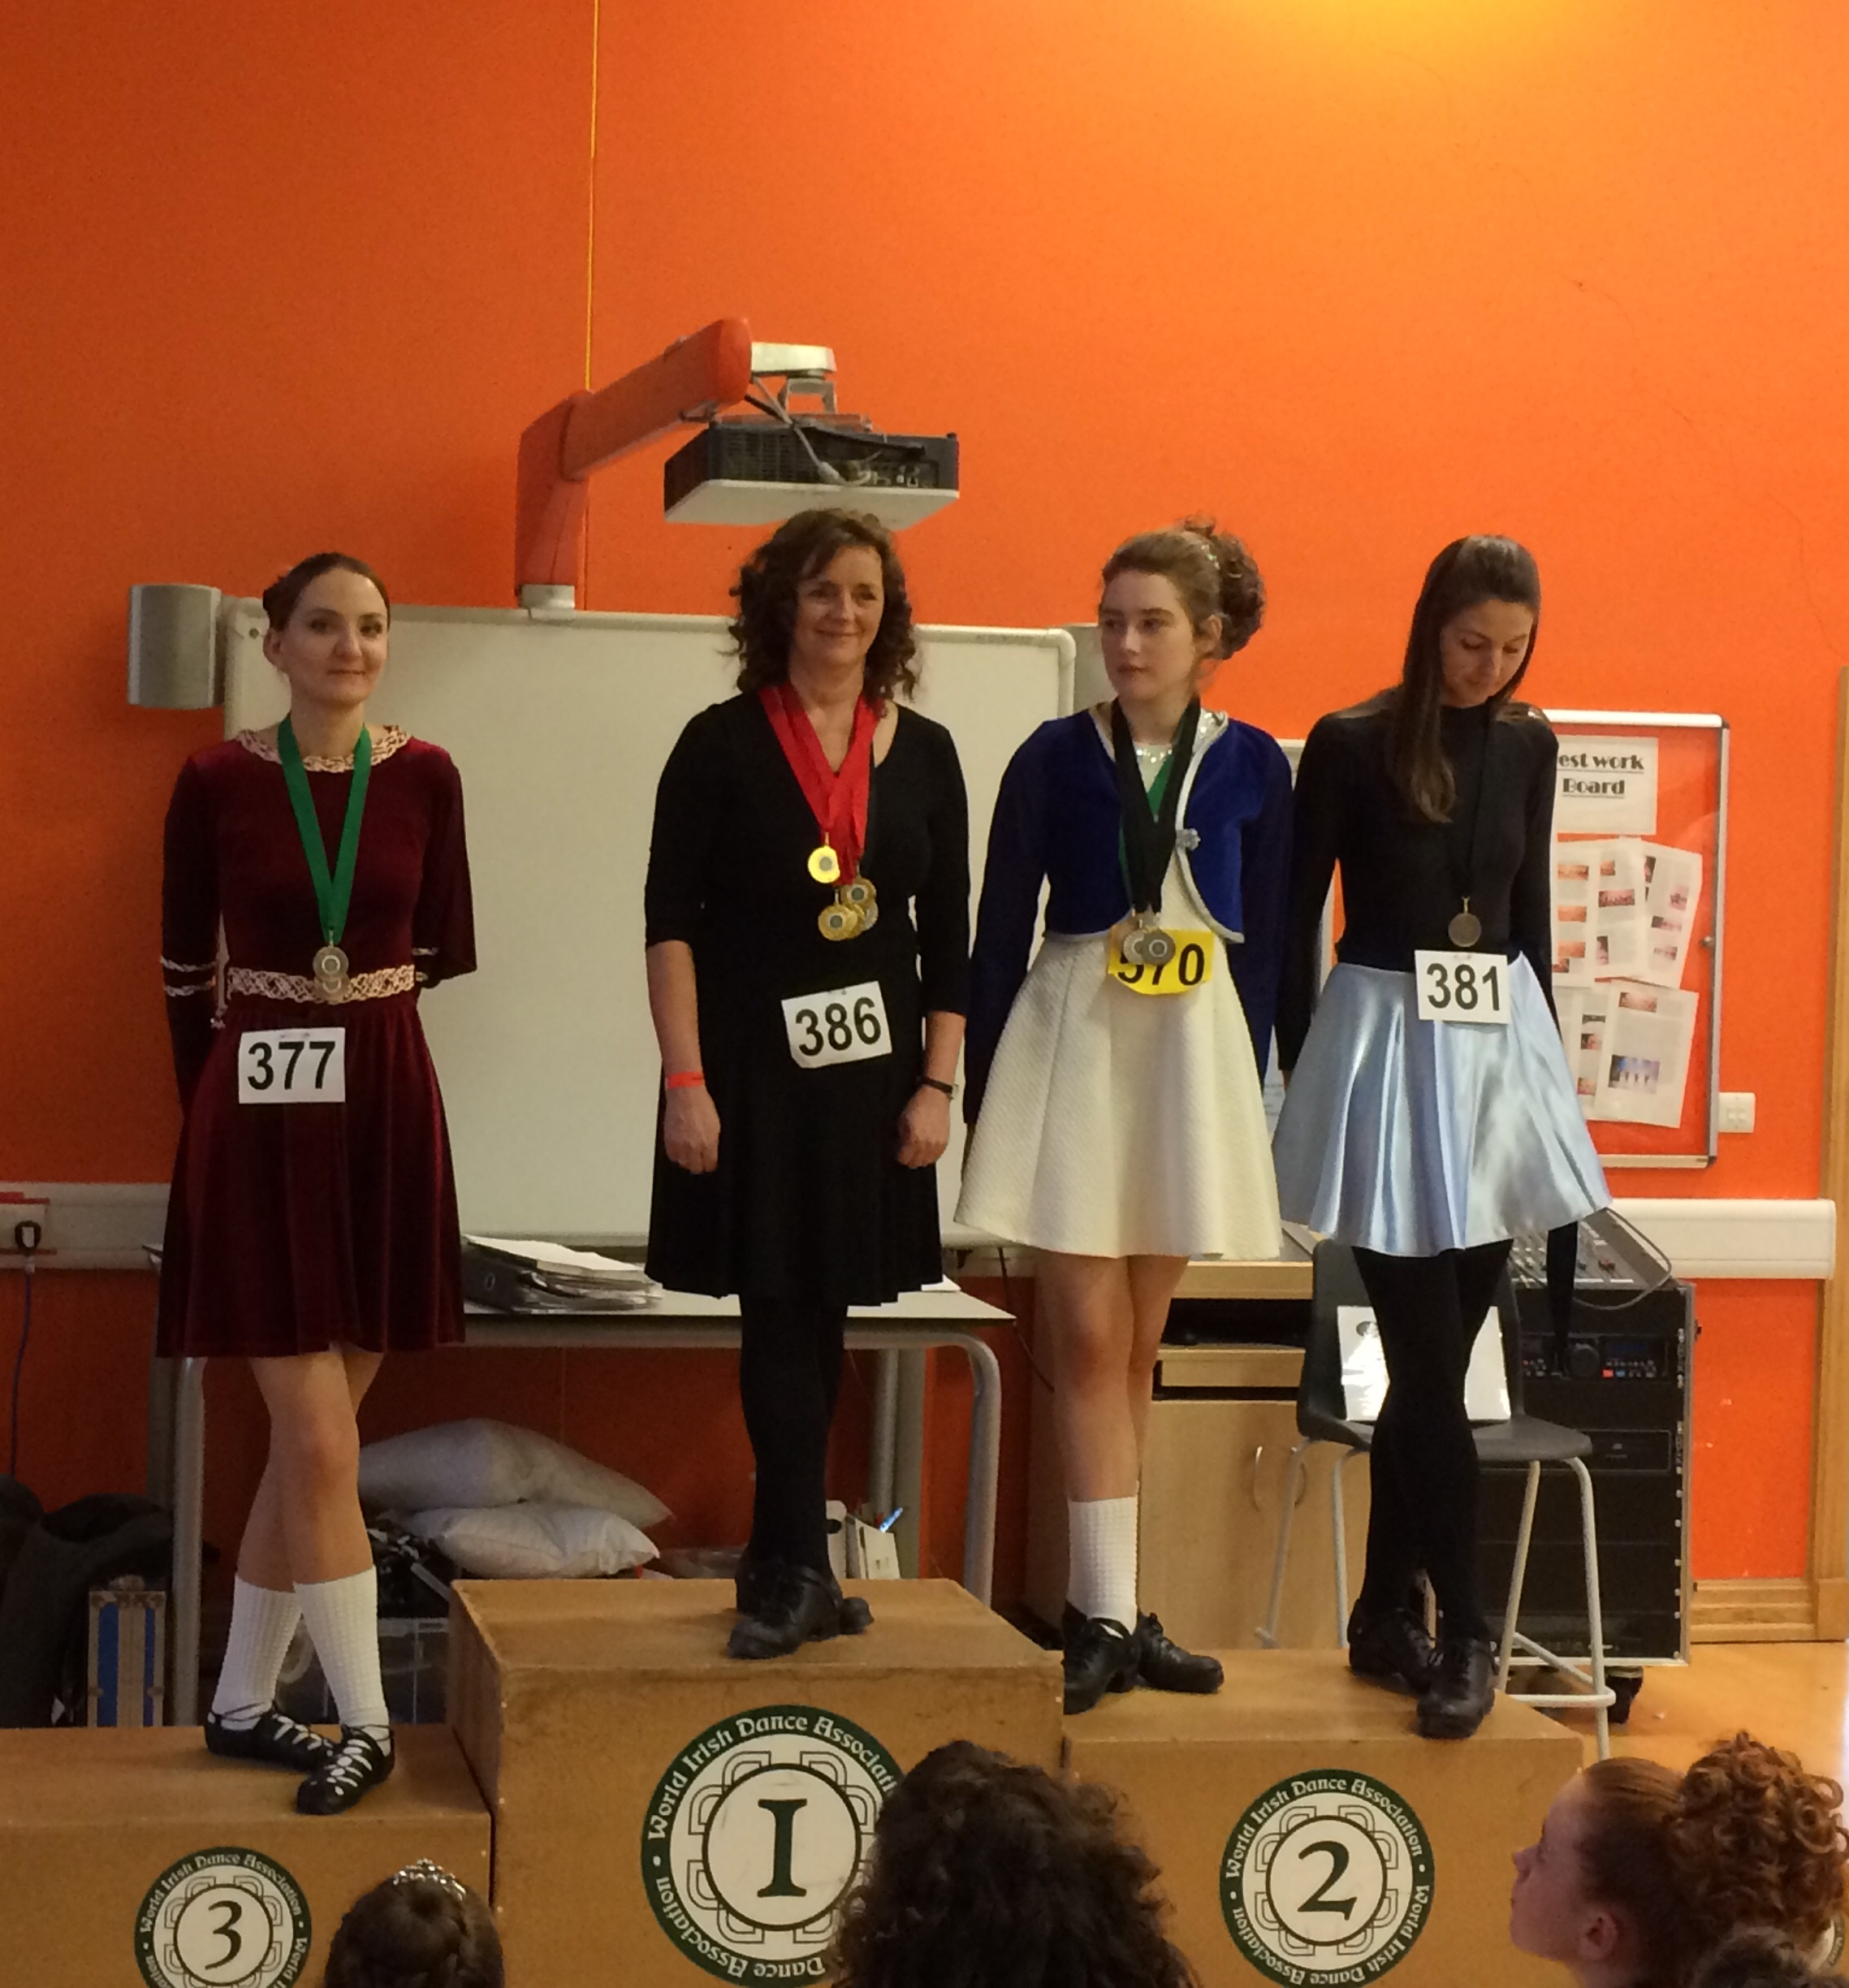 Eithne 1st Place Swindon Feis